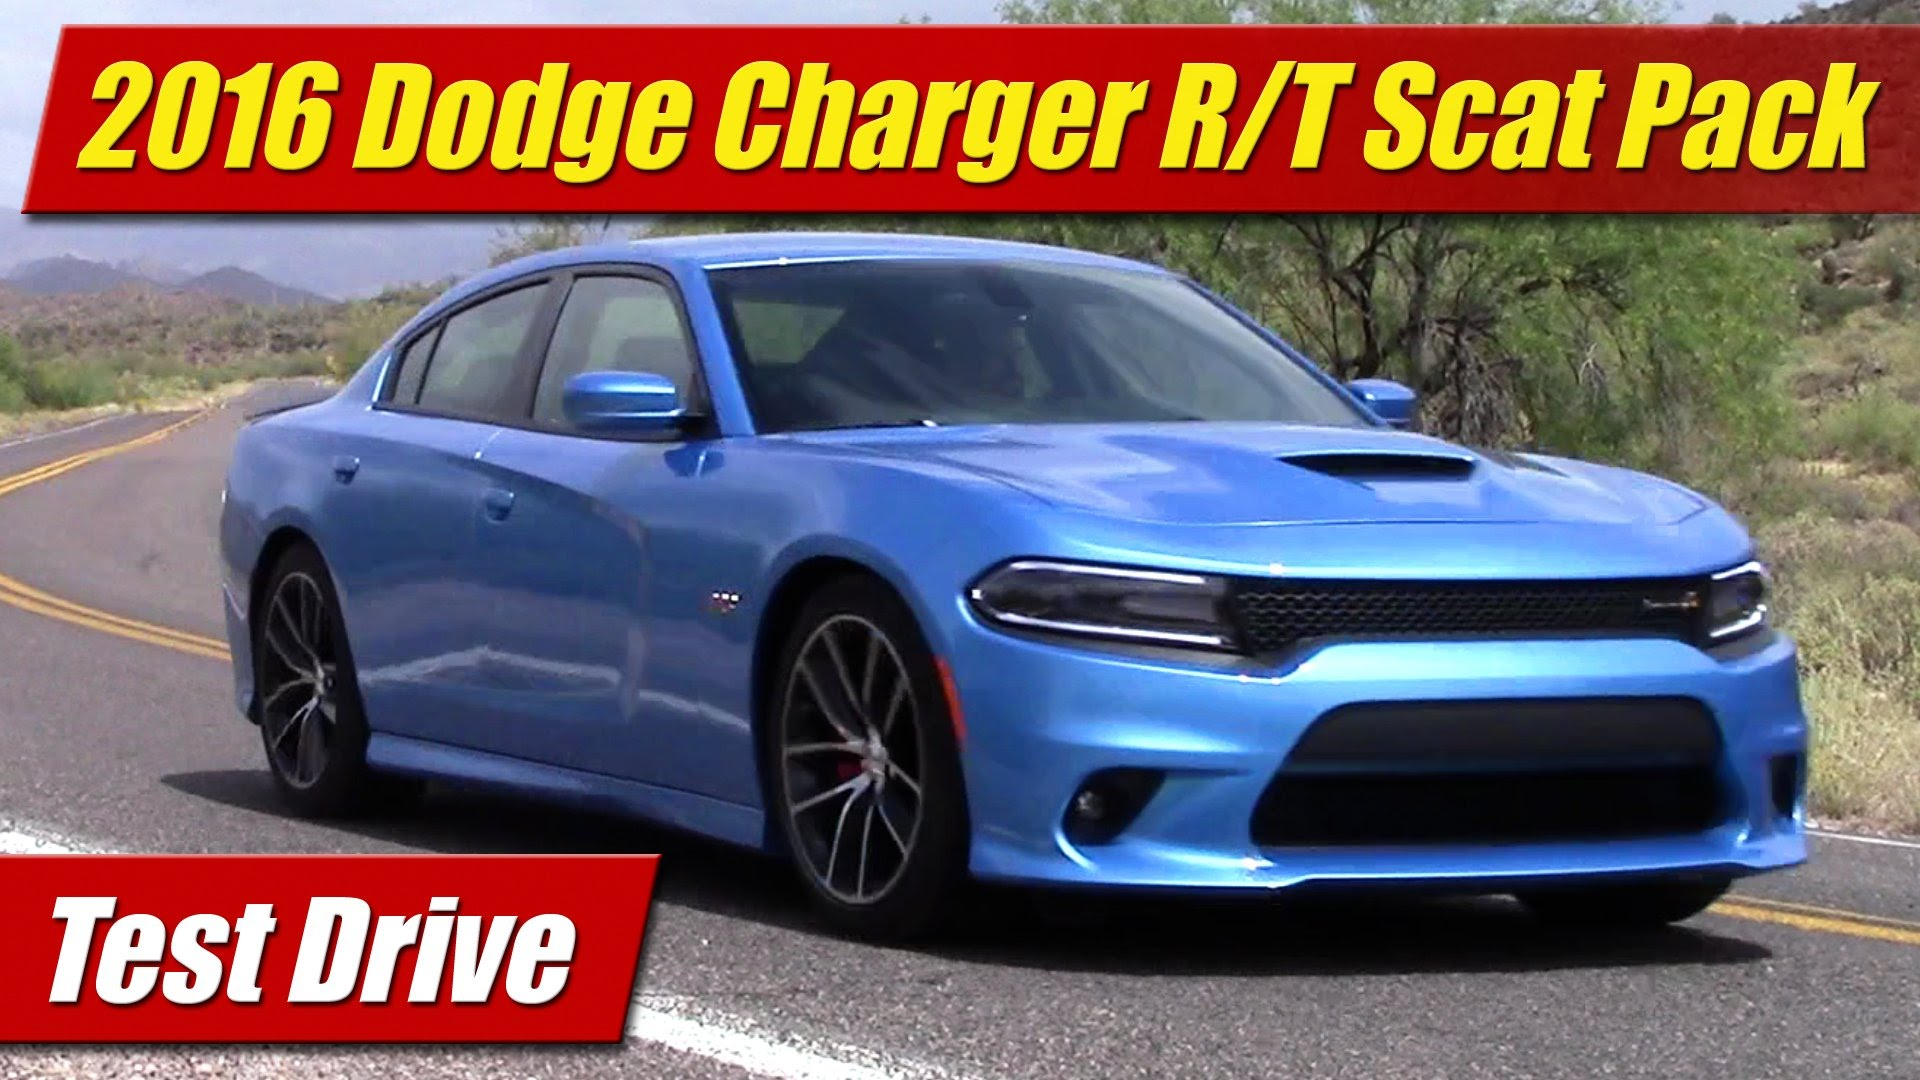 test drive 2016 dodge charger r t scat pack testdriven tv. Black Bedroom Furniture Sets. Home Design Ideas